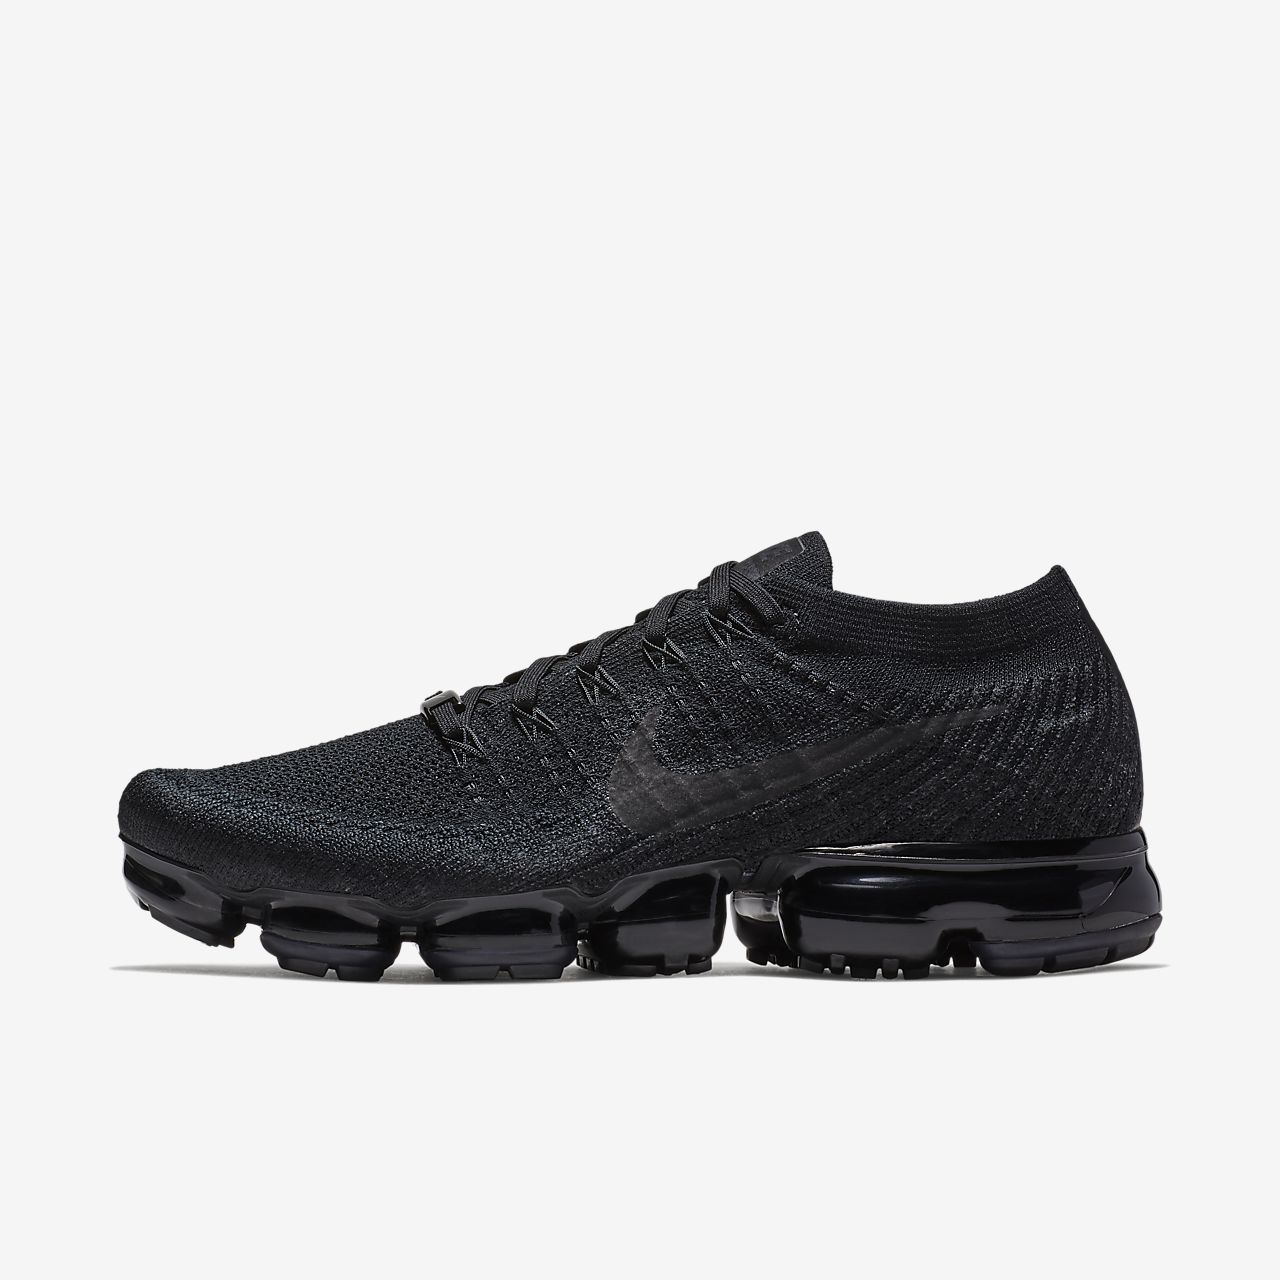 fe20248b0c59 Nike Air VaporMax Flyknit Men s Running Shoe. Nike.com GB